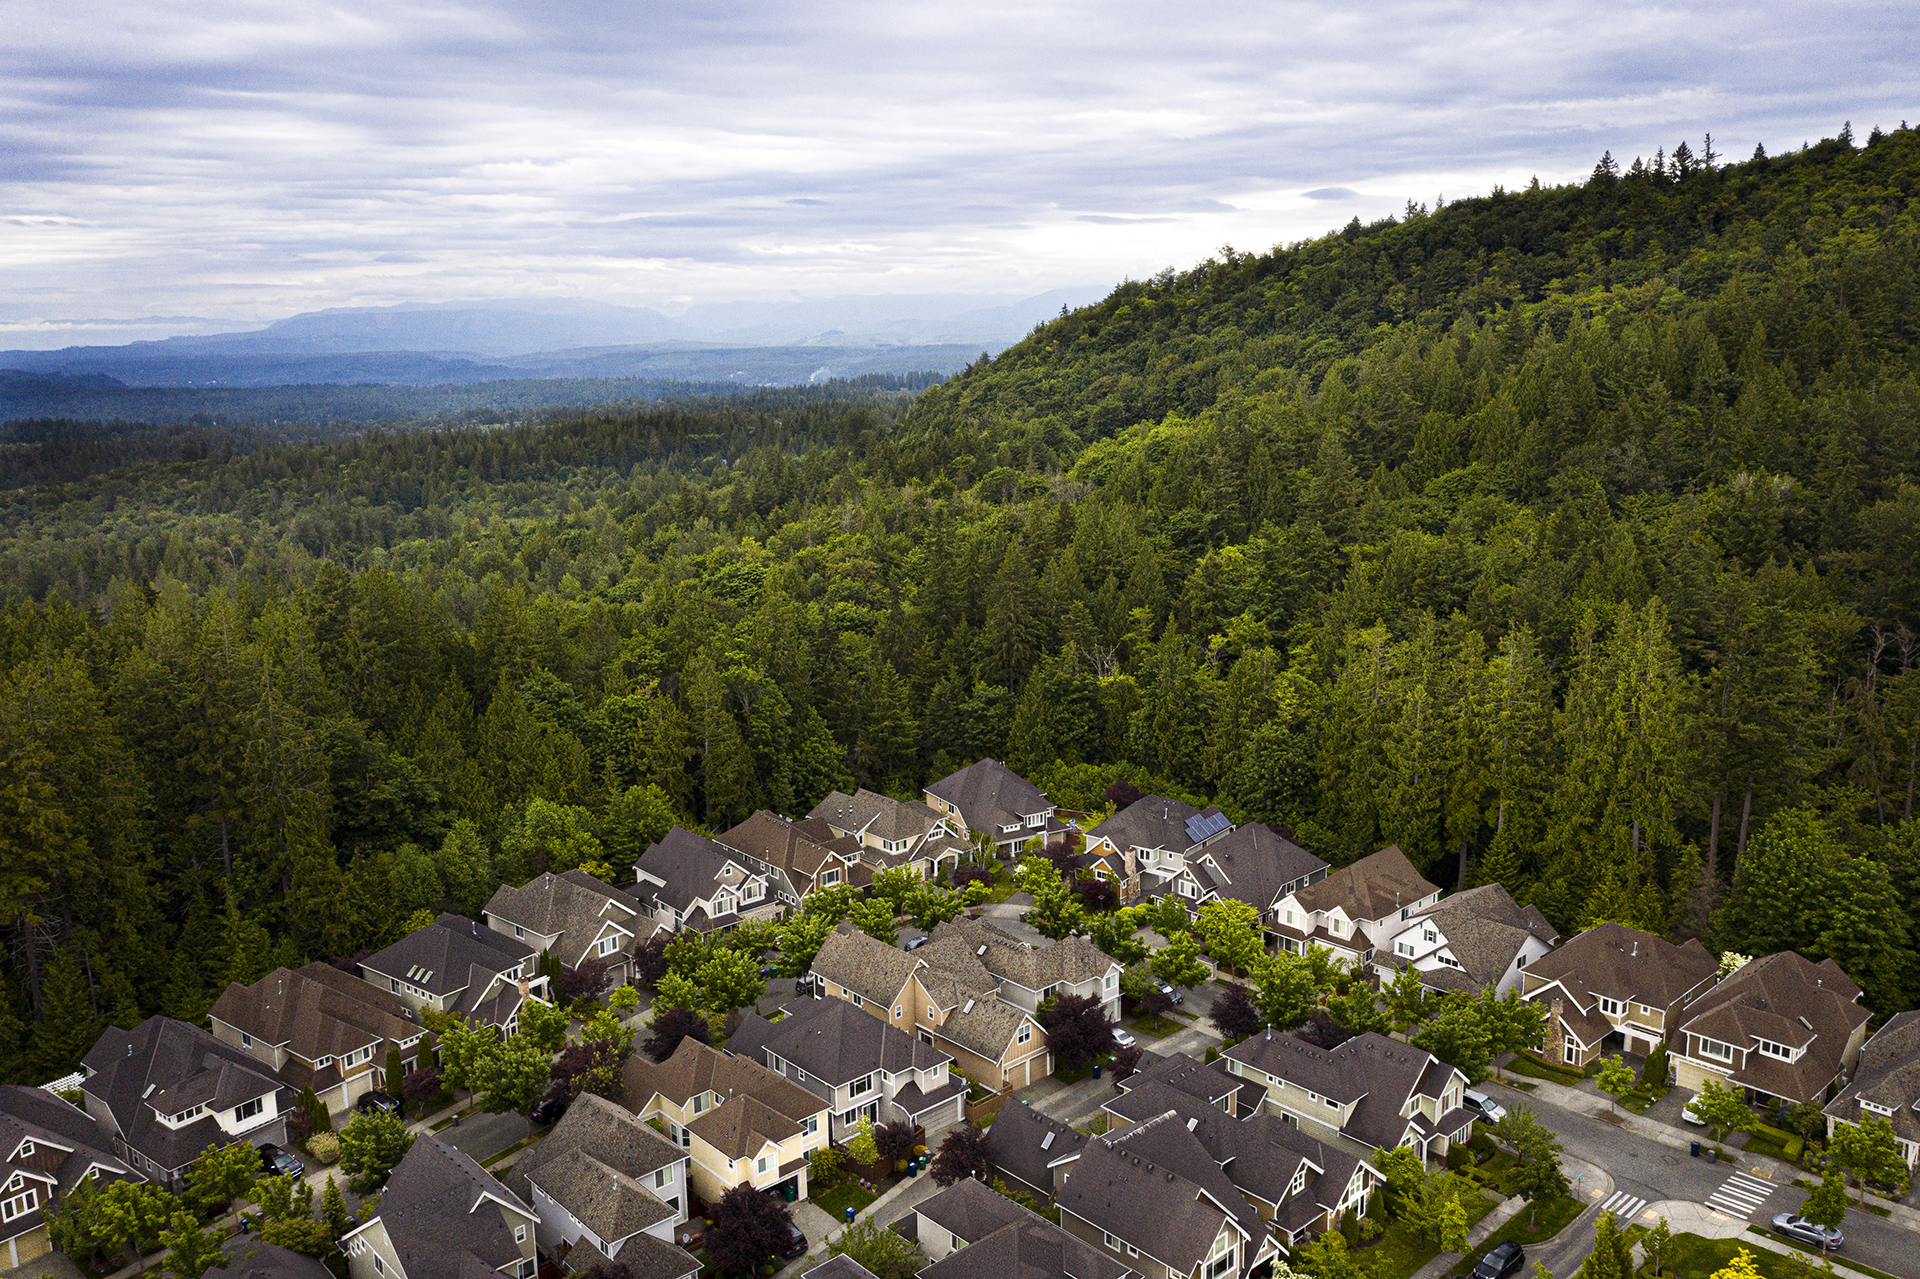 Aerial view of homes and forest